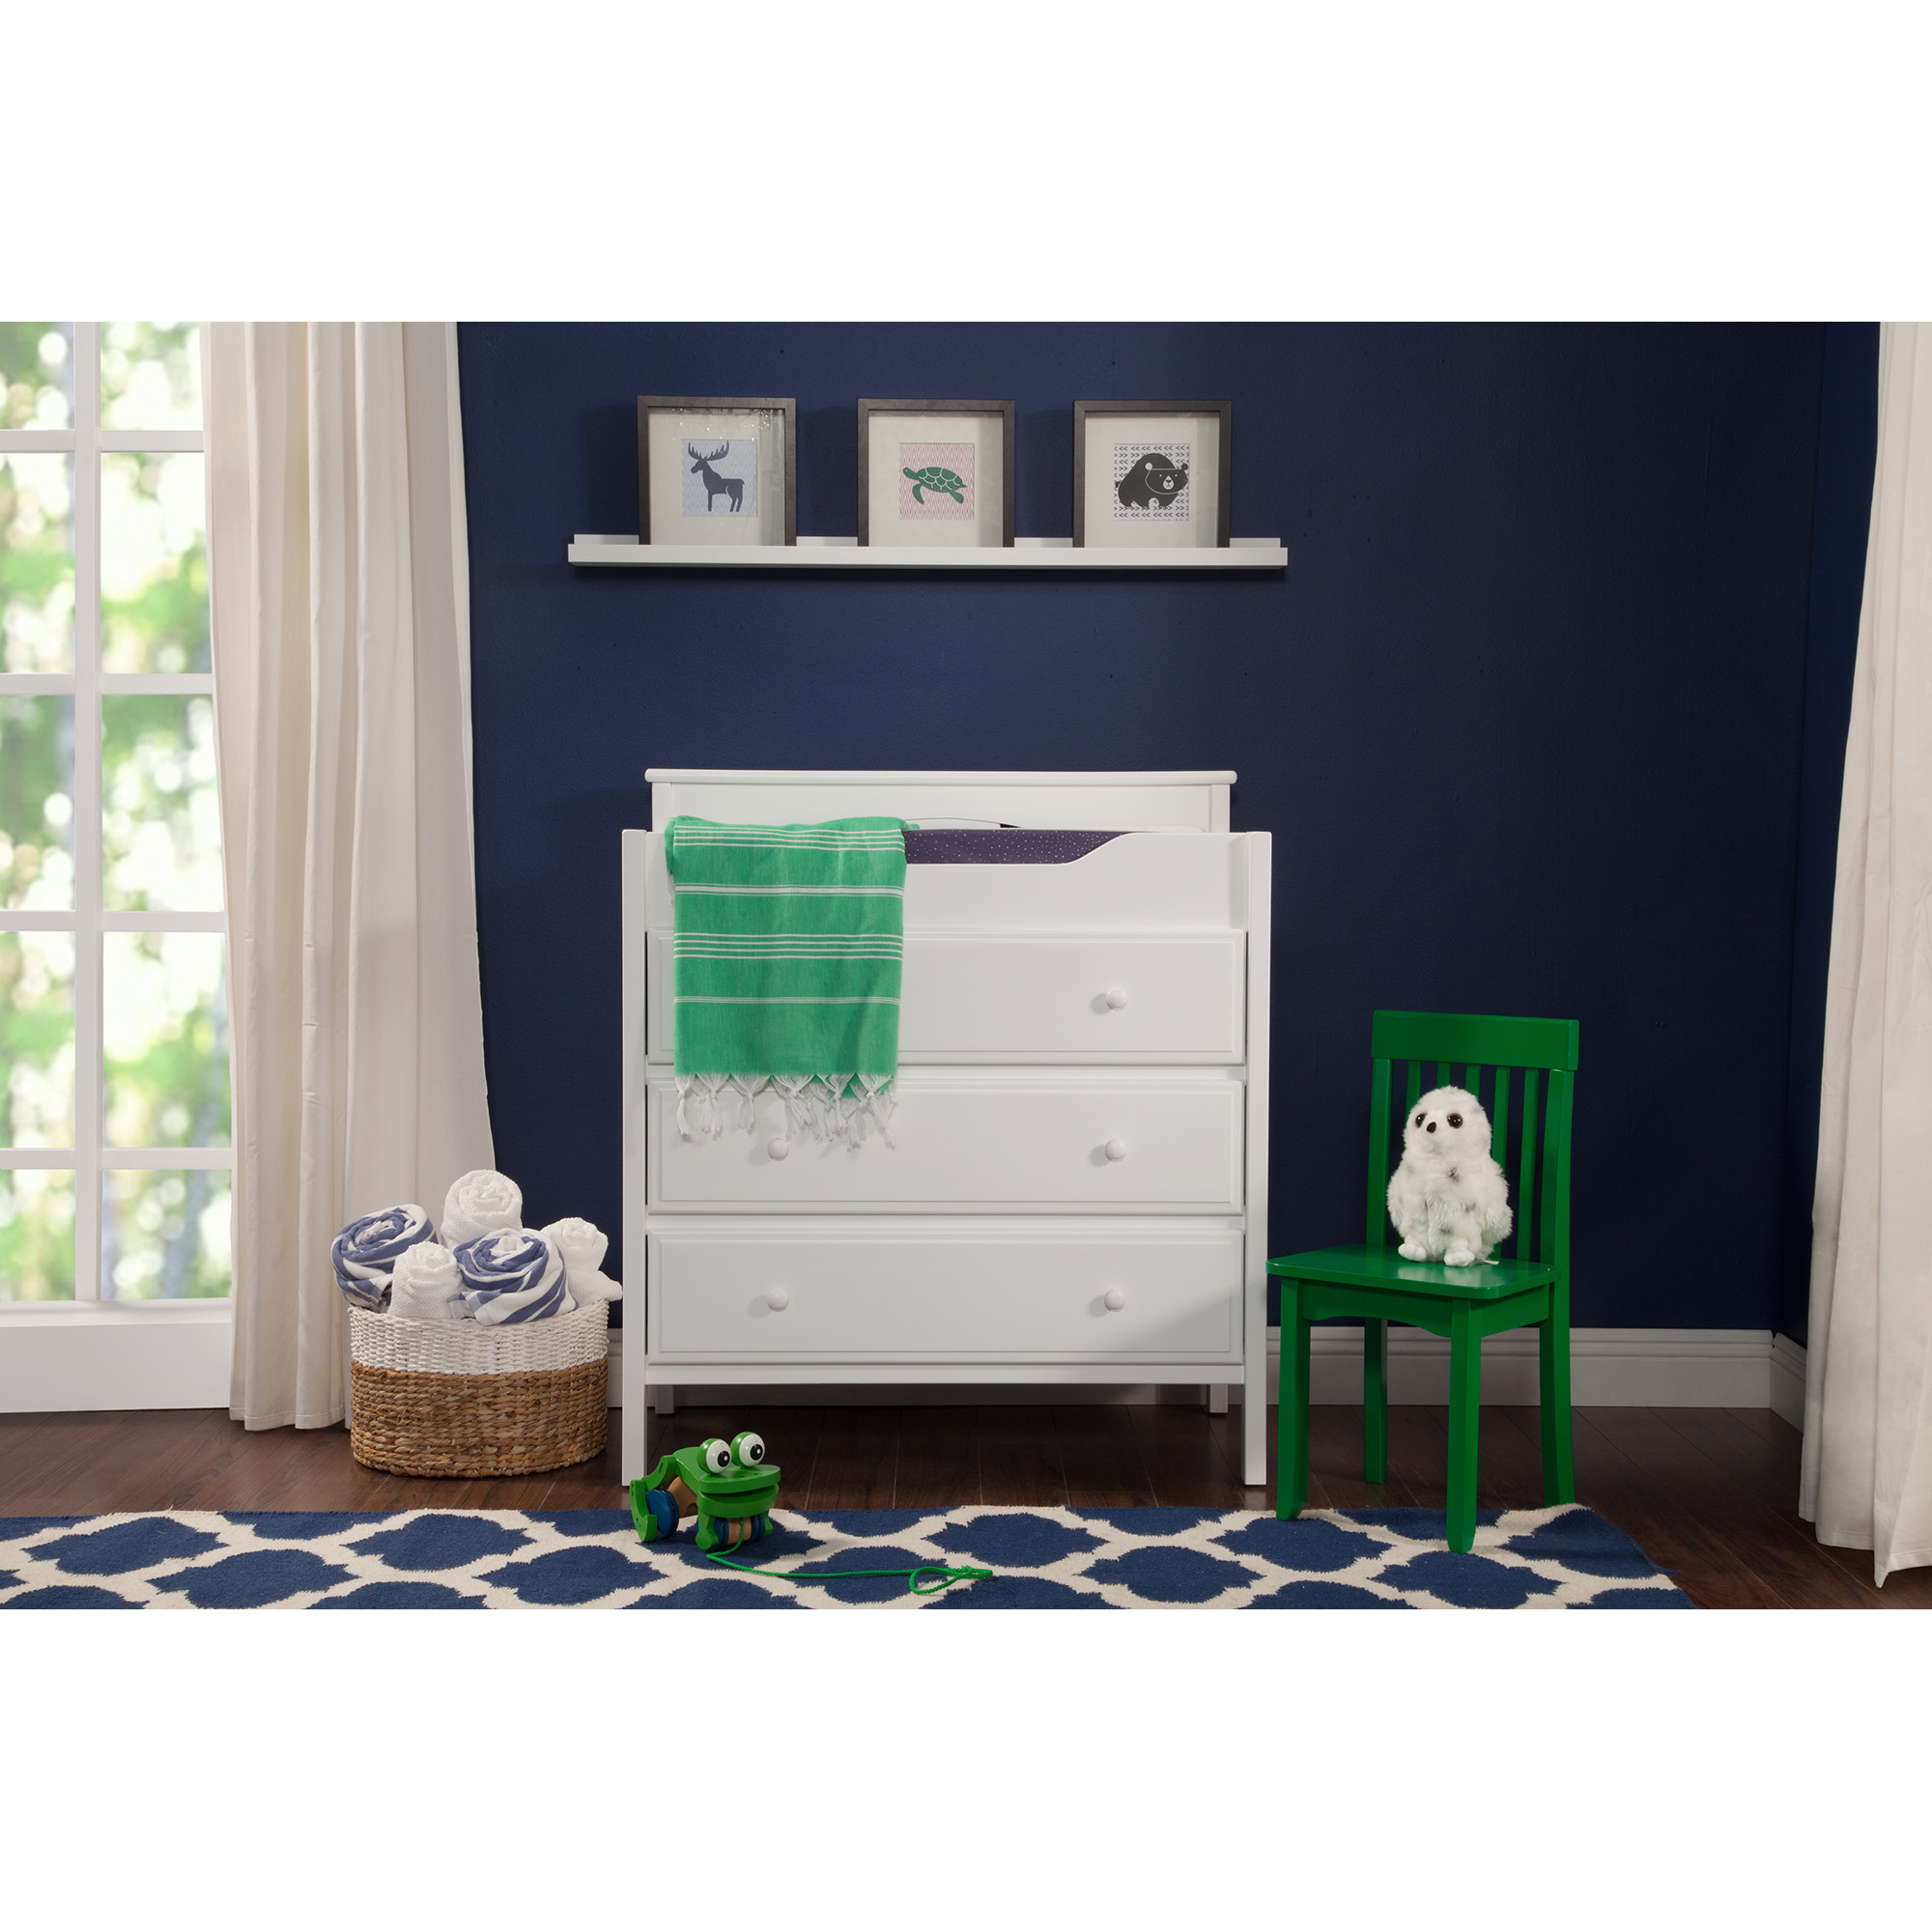 brush dresser style us farmhouse chippy toys dressers white magic blue r calm diy painted